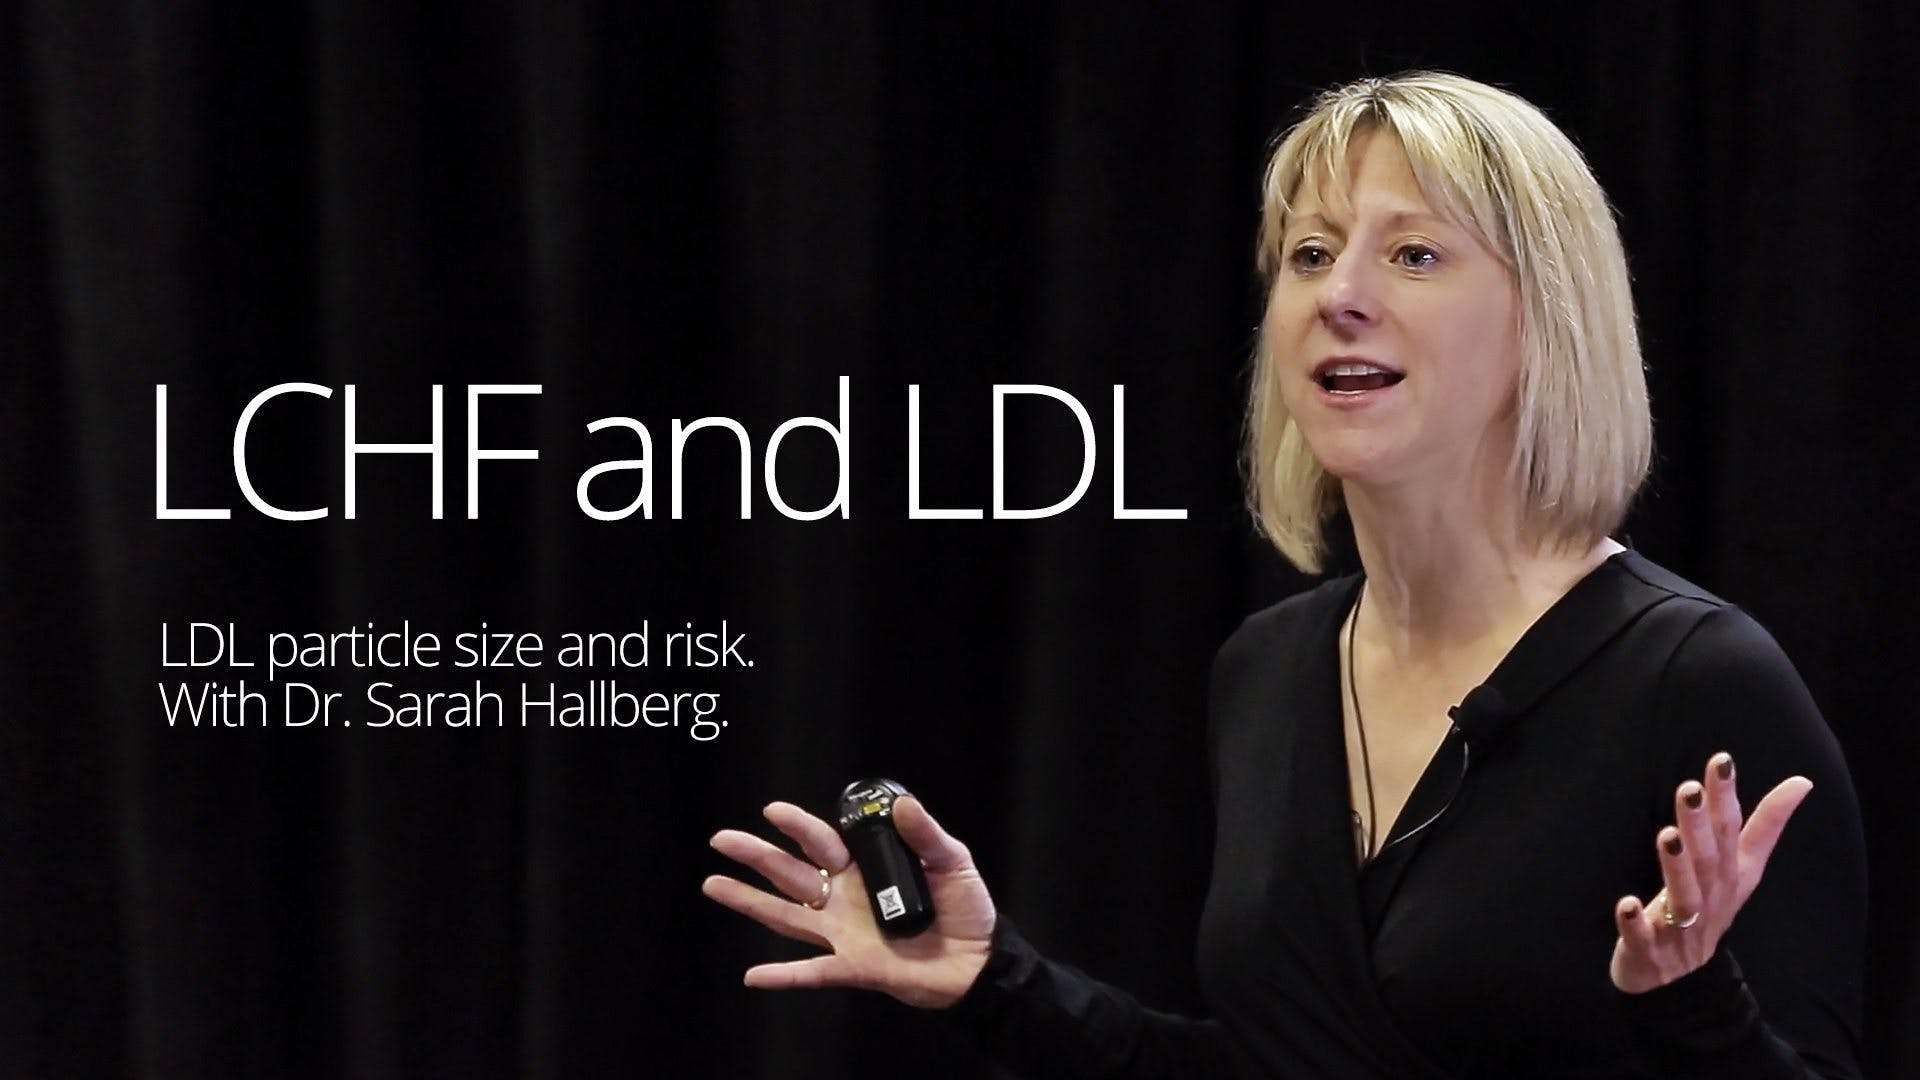 LCHF and LDL – Dr. Sarah Hallberg